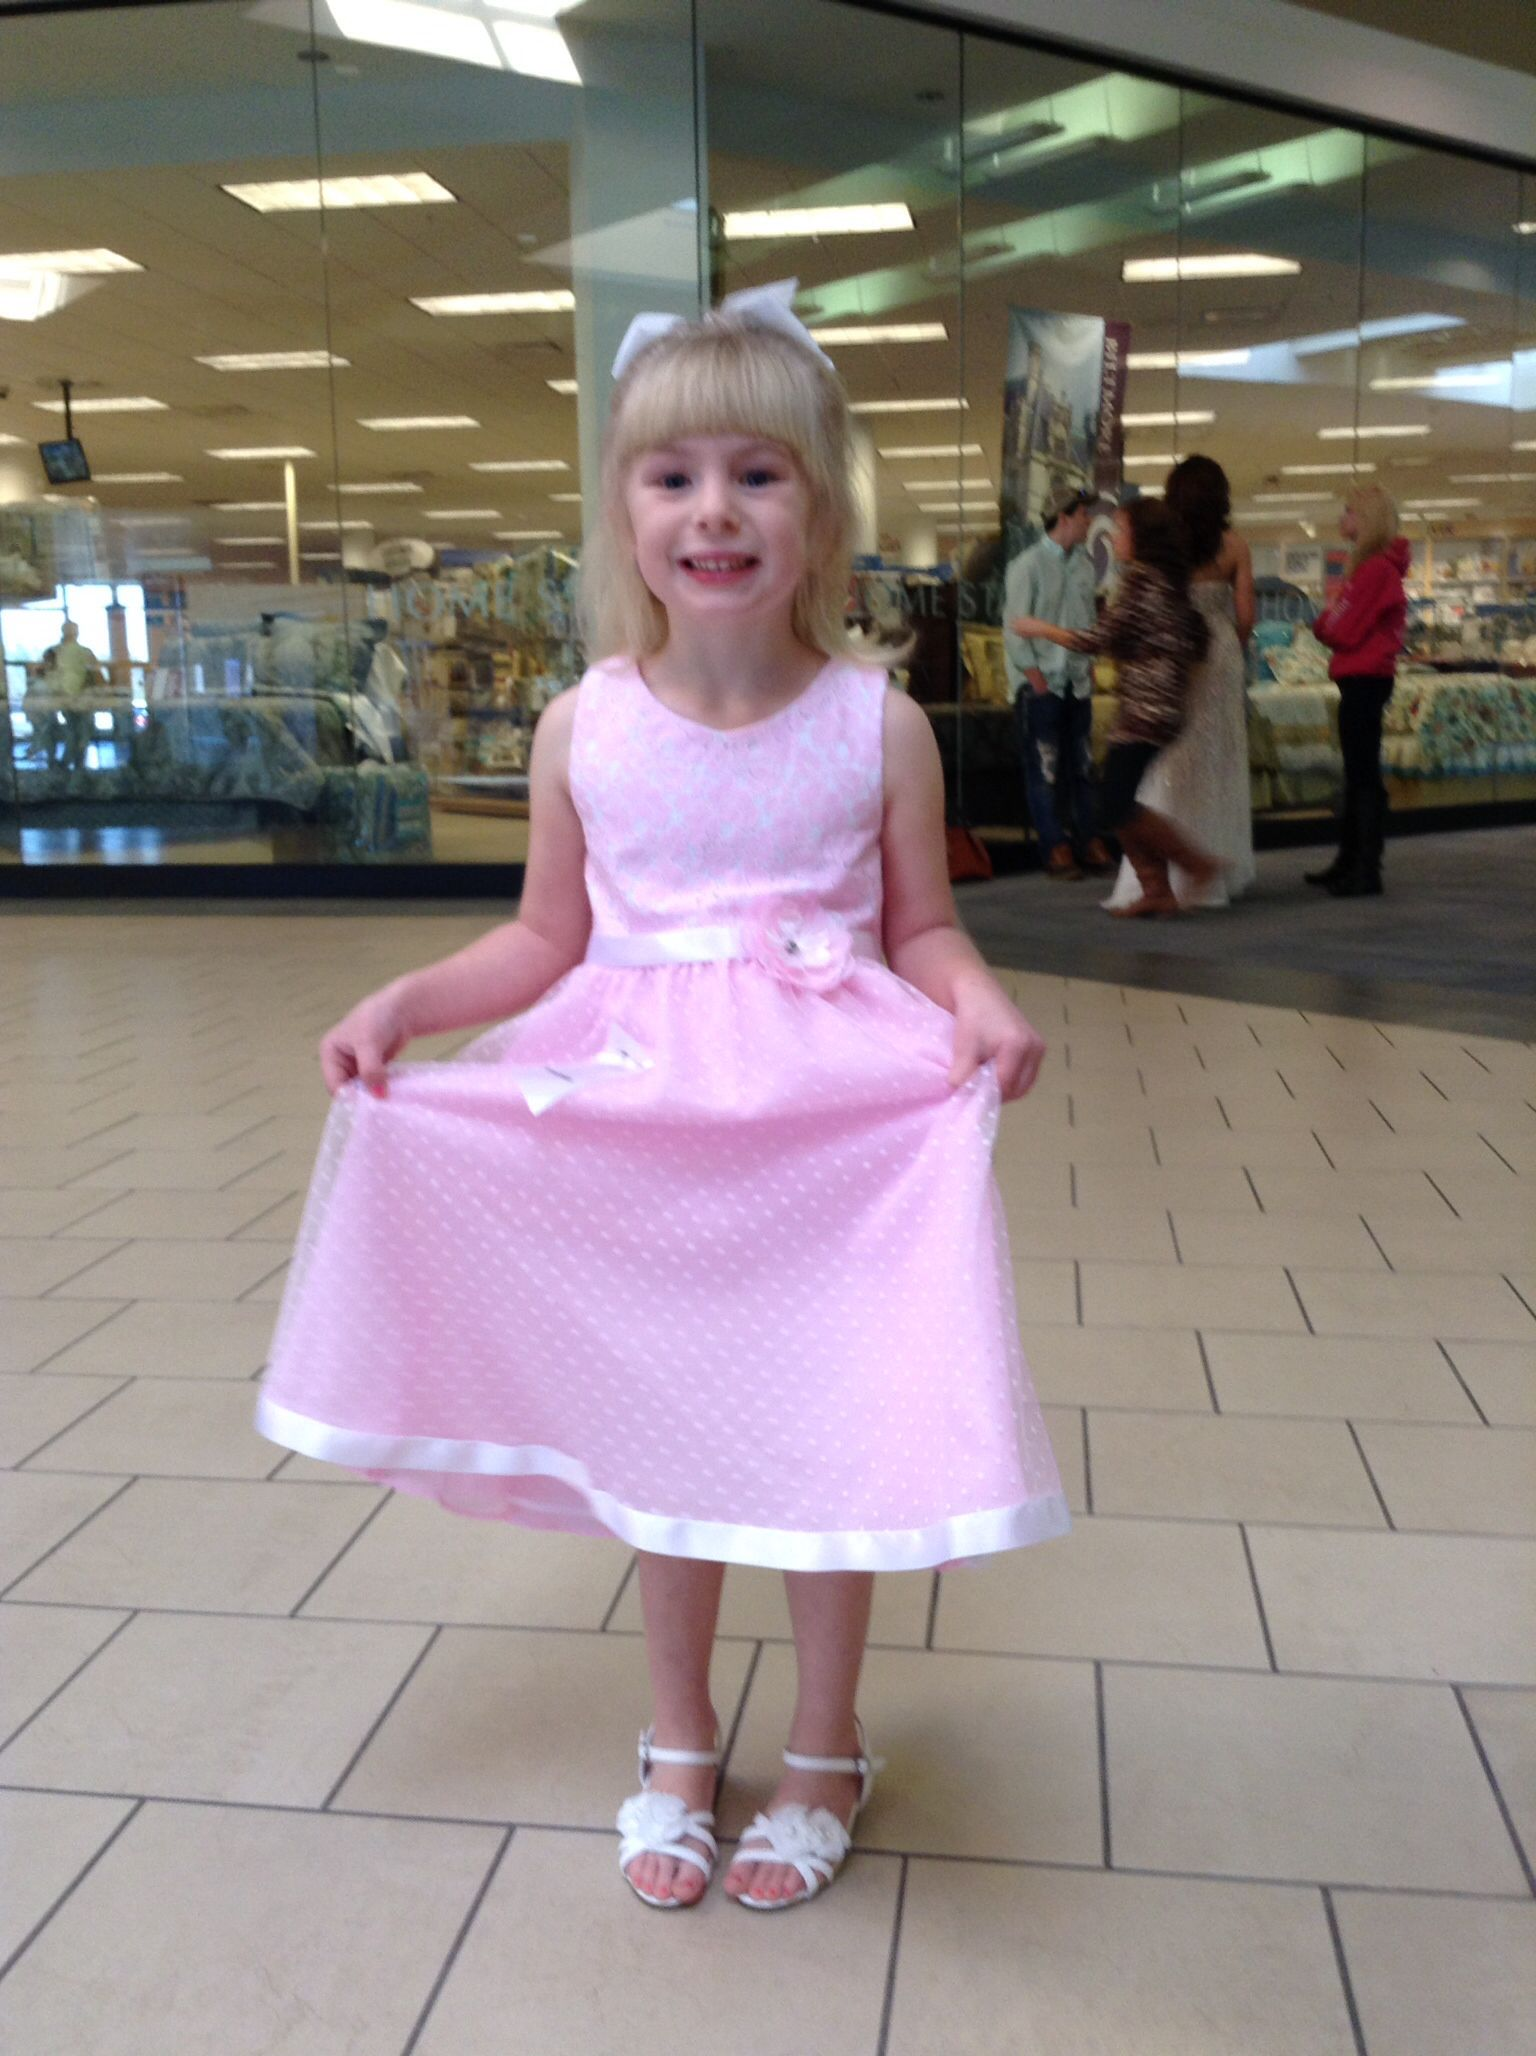 Kayliegh in her peagant dress at the Anderson mall